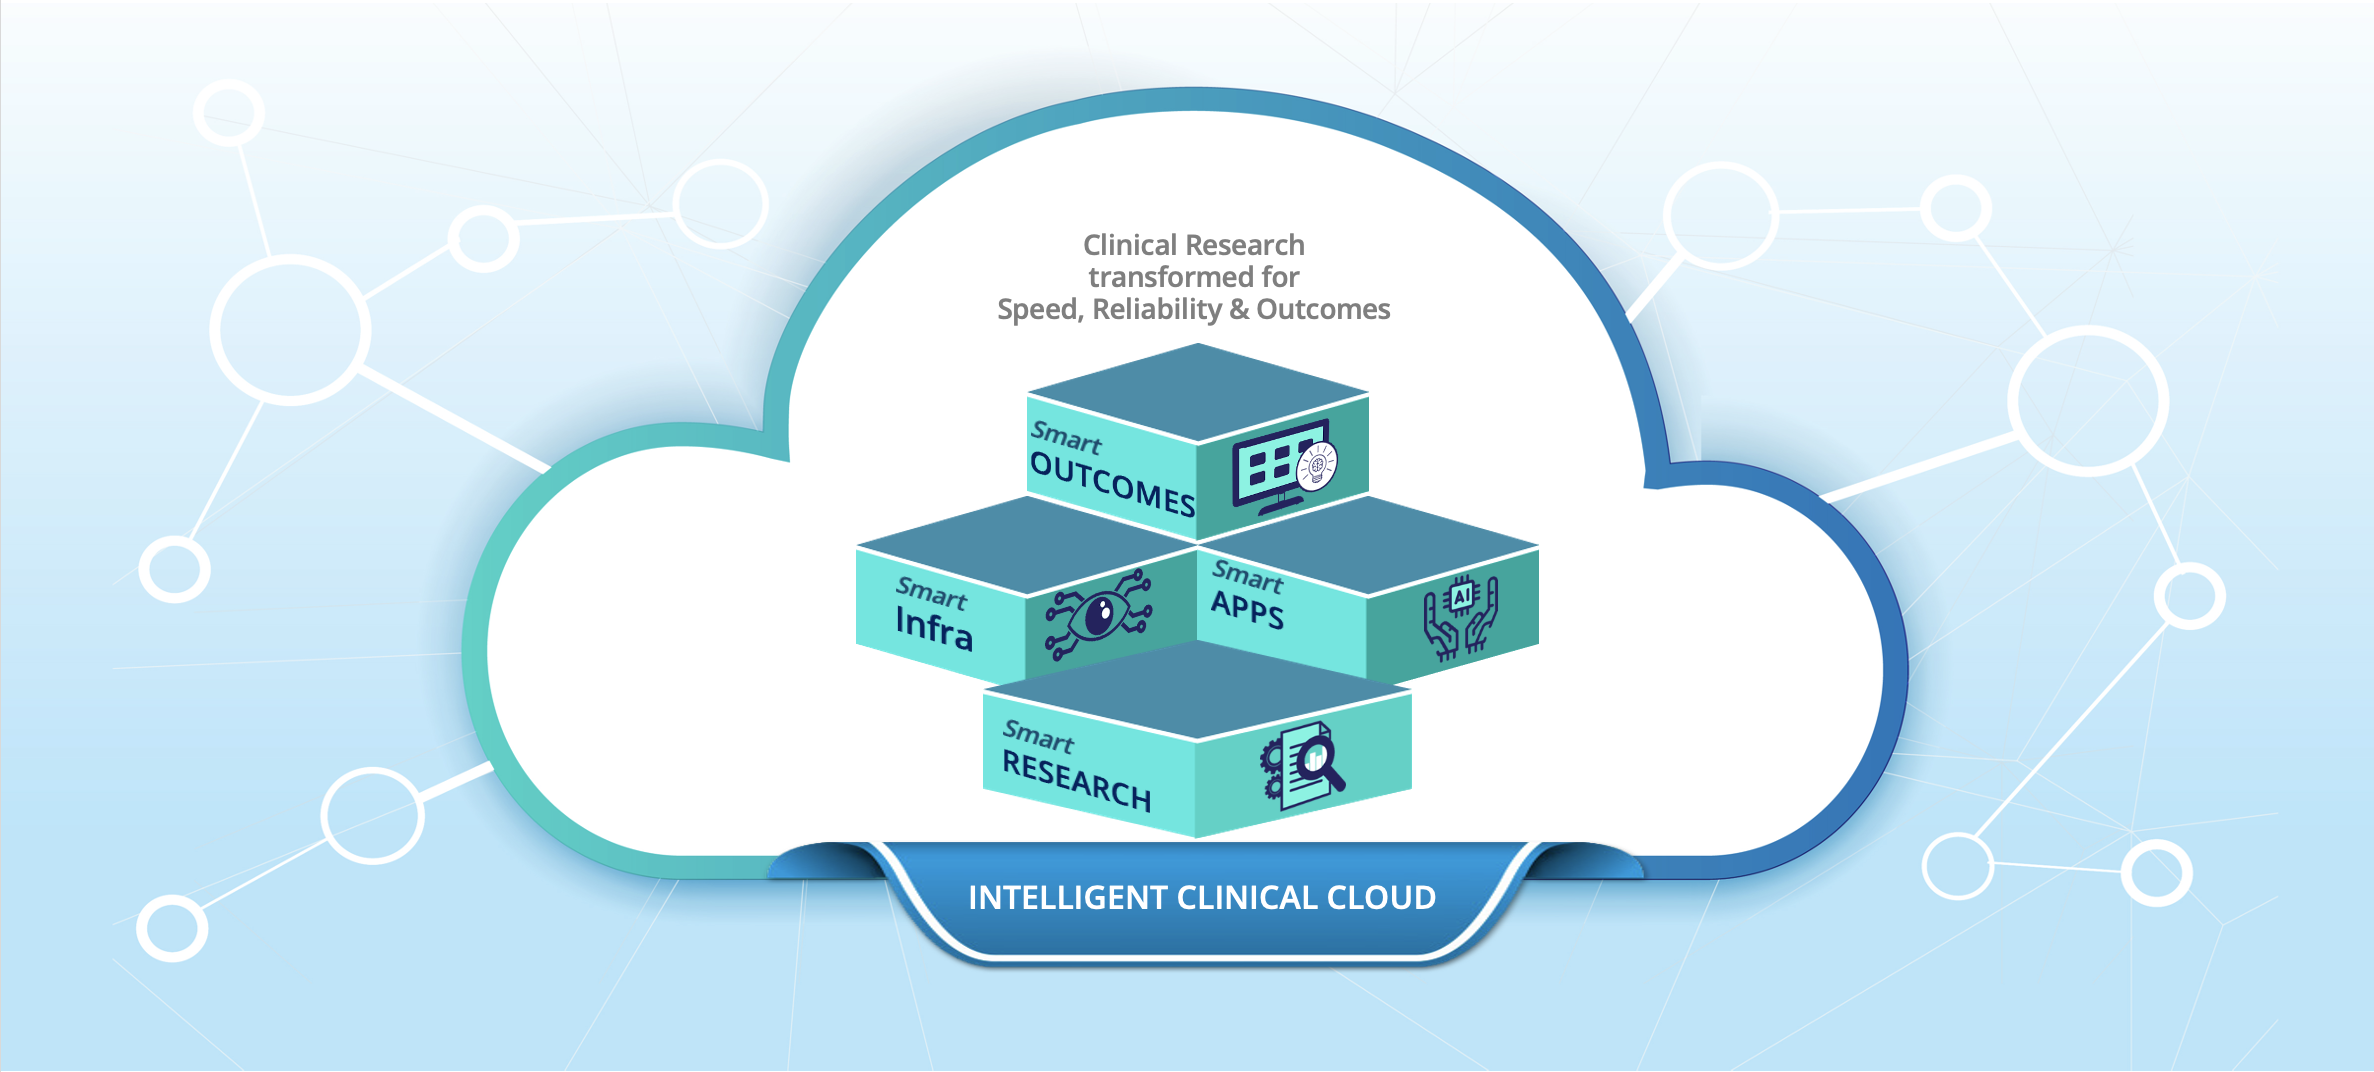 Intelligent Clinical Cloud